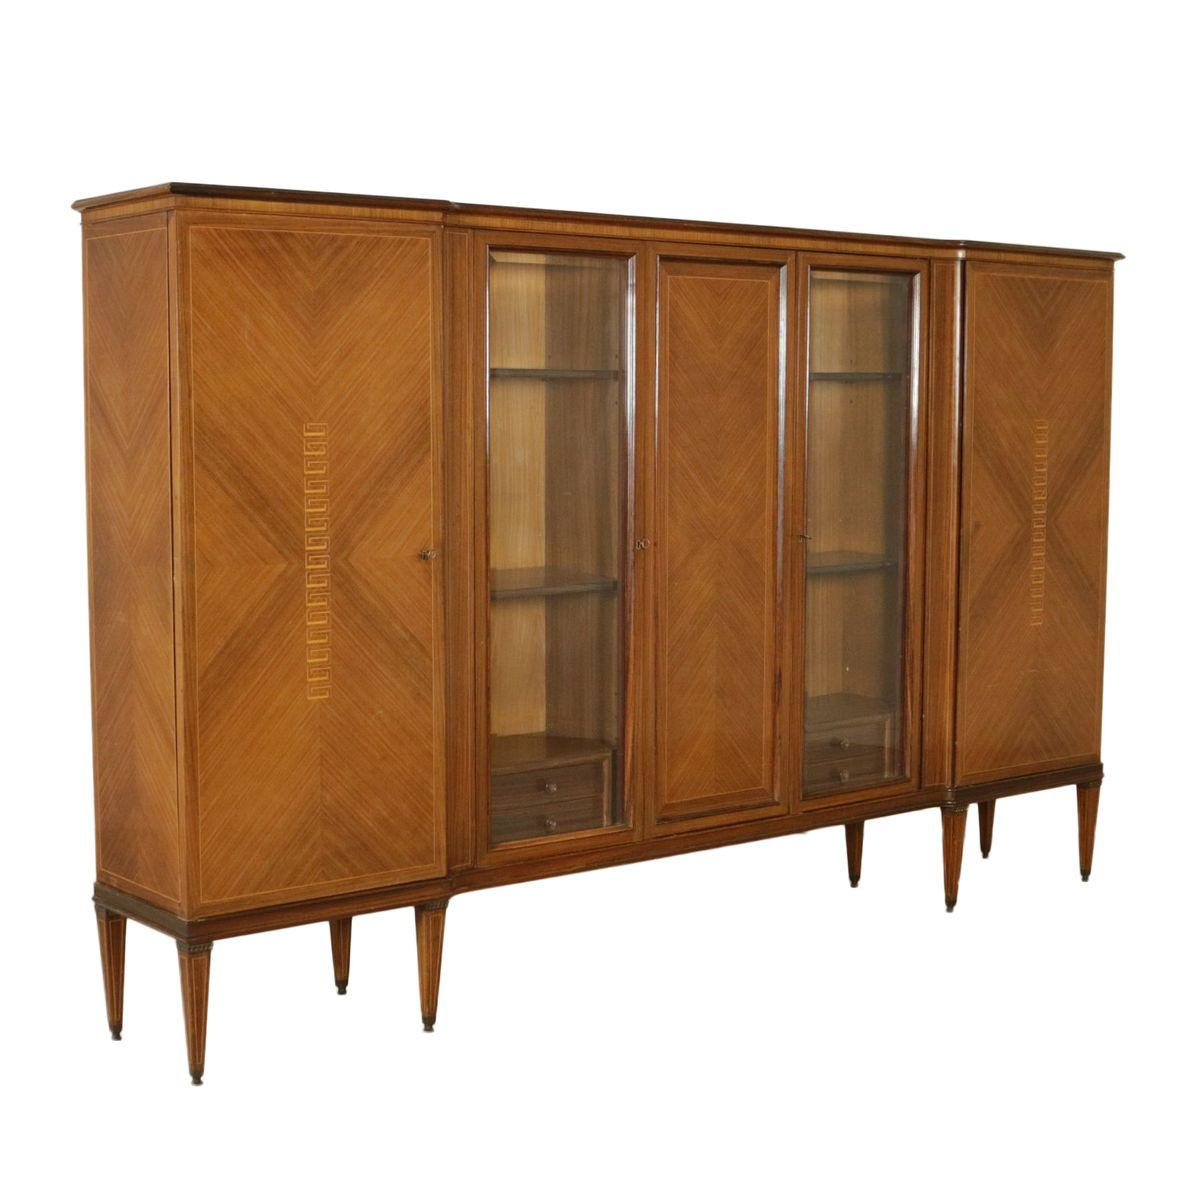 armoire placage de palissandre 1950s en vente sur pamono. Black Bedroom Furniture Sets. Home Design Ideas